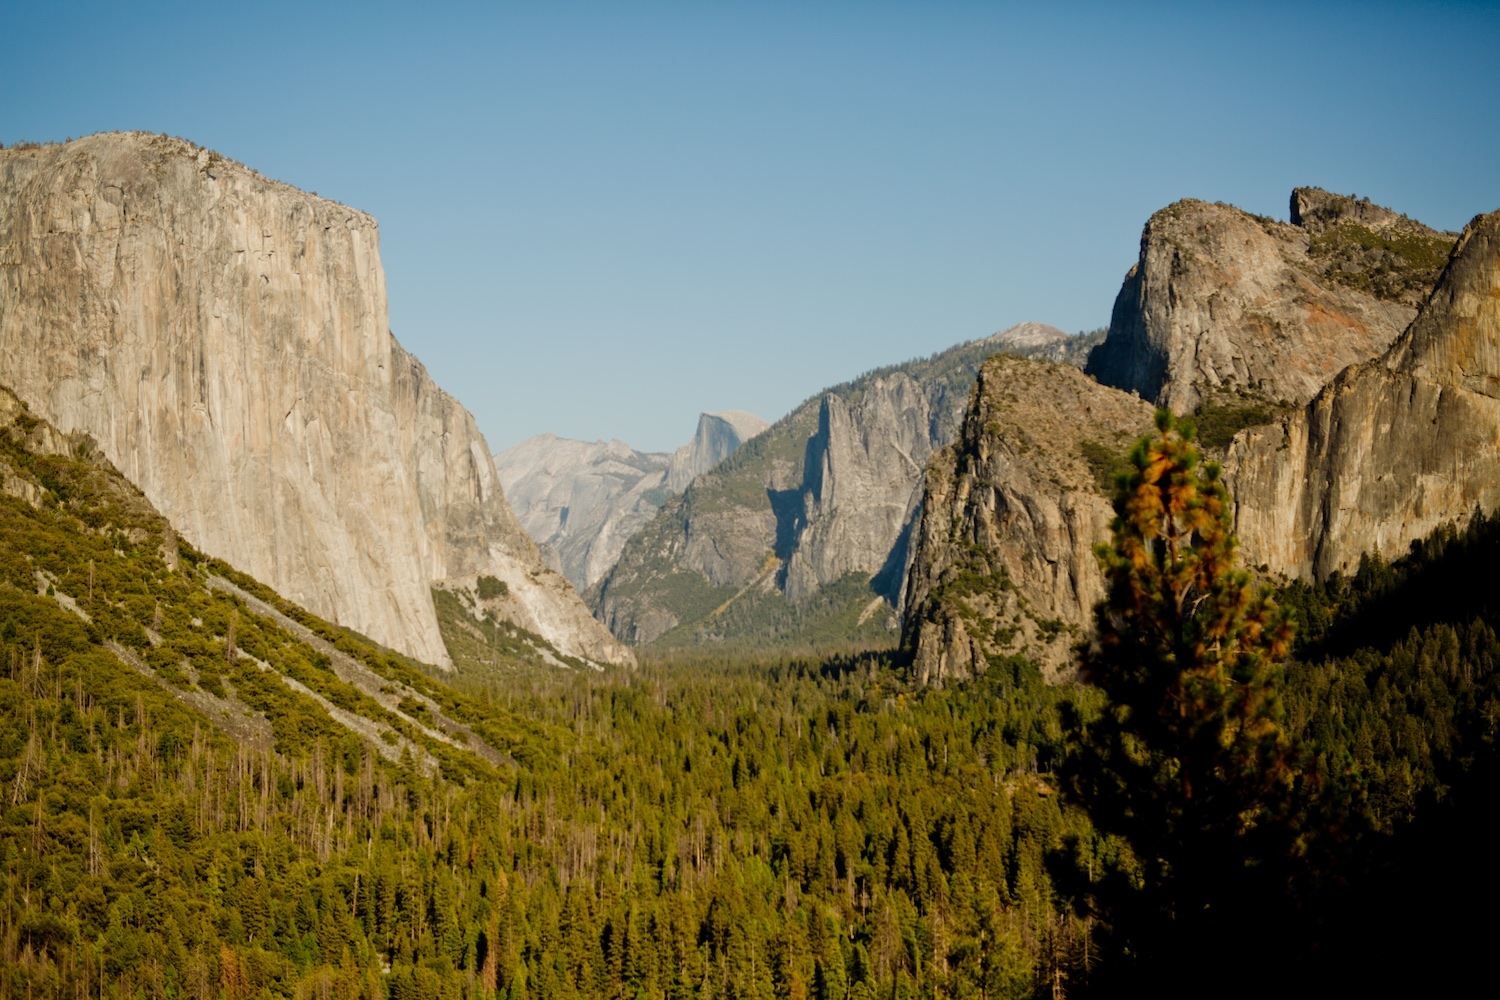 Yosemite Valley Hike Hike Tips Overnight Stay Curry Village Lodge | www.thegoldenbun.com